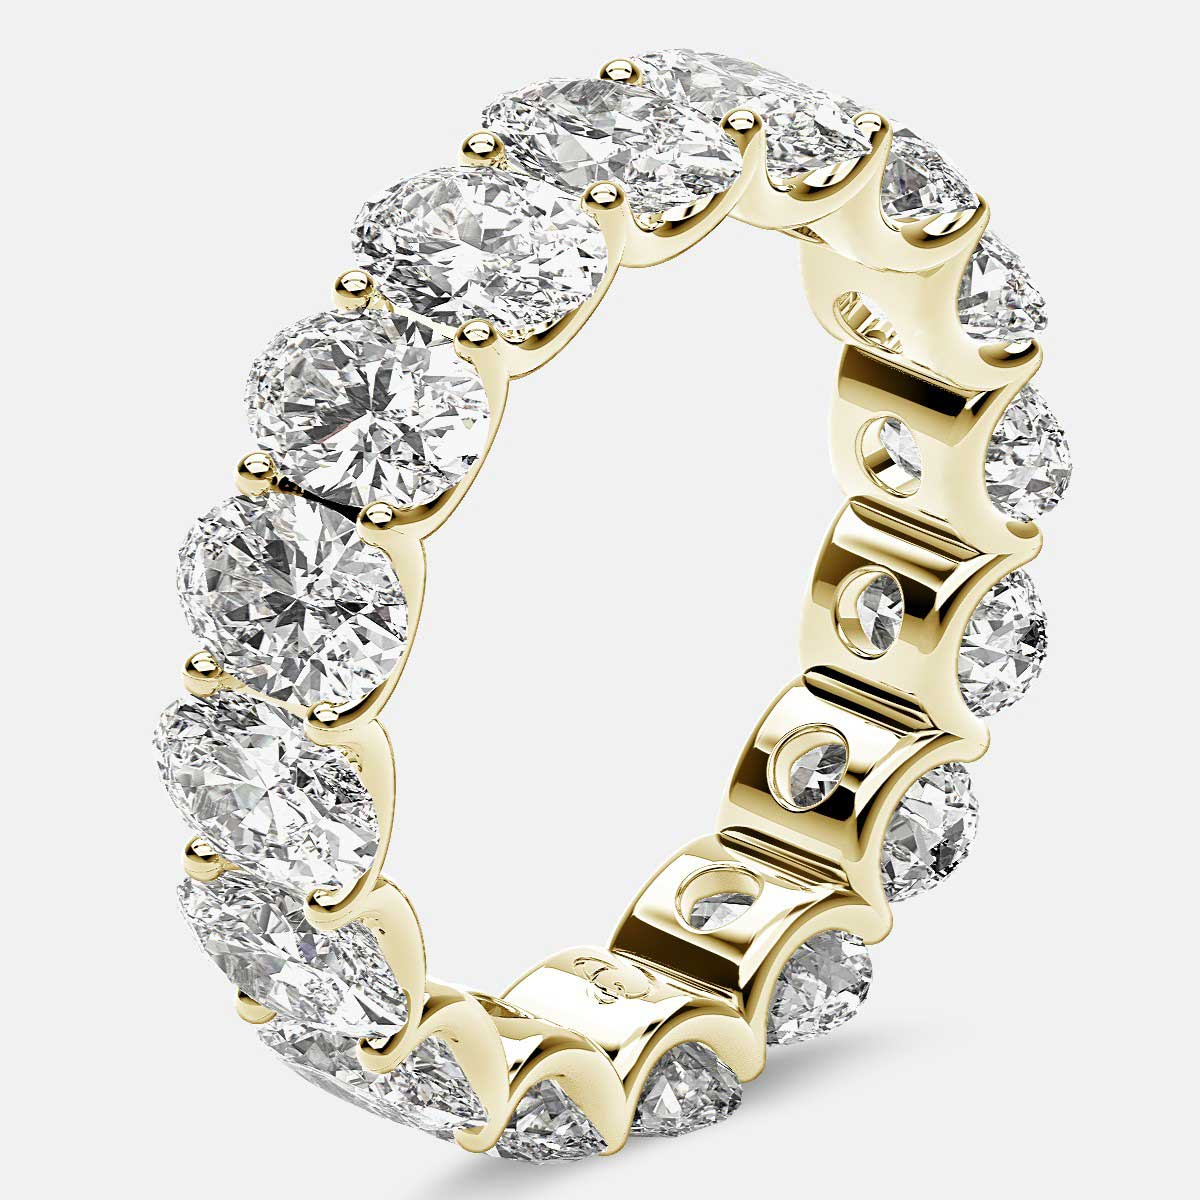 Curved Prong Eternity Ring with Oval Diamonds in 18k Yellow Gold